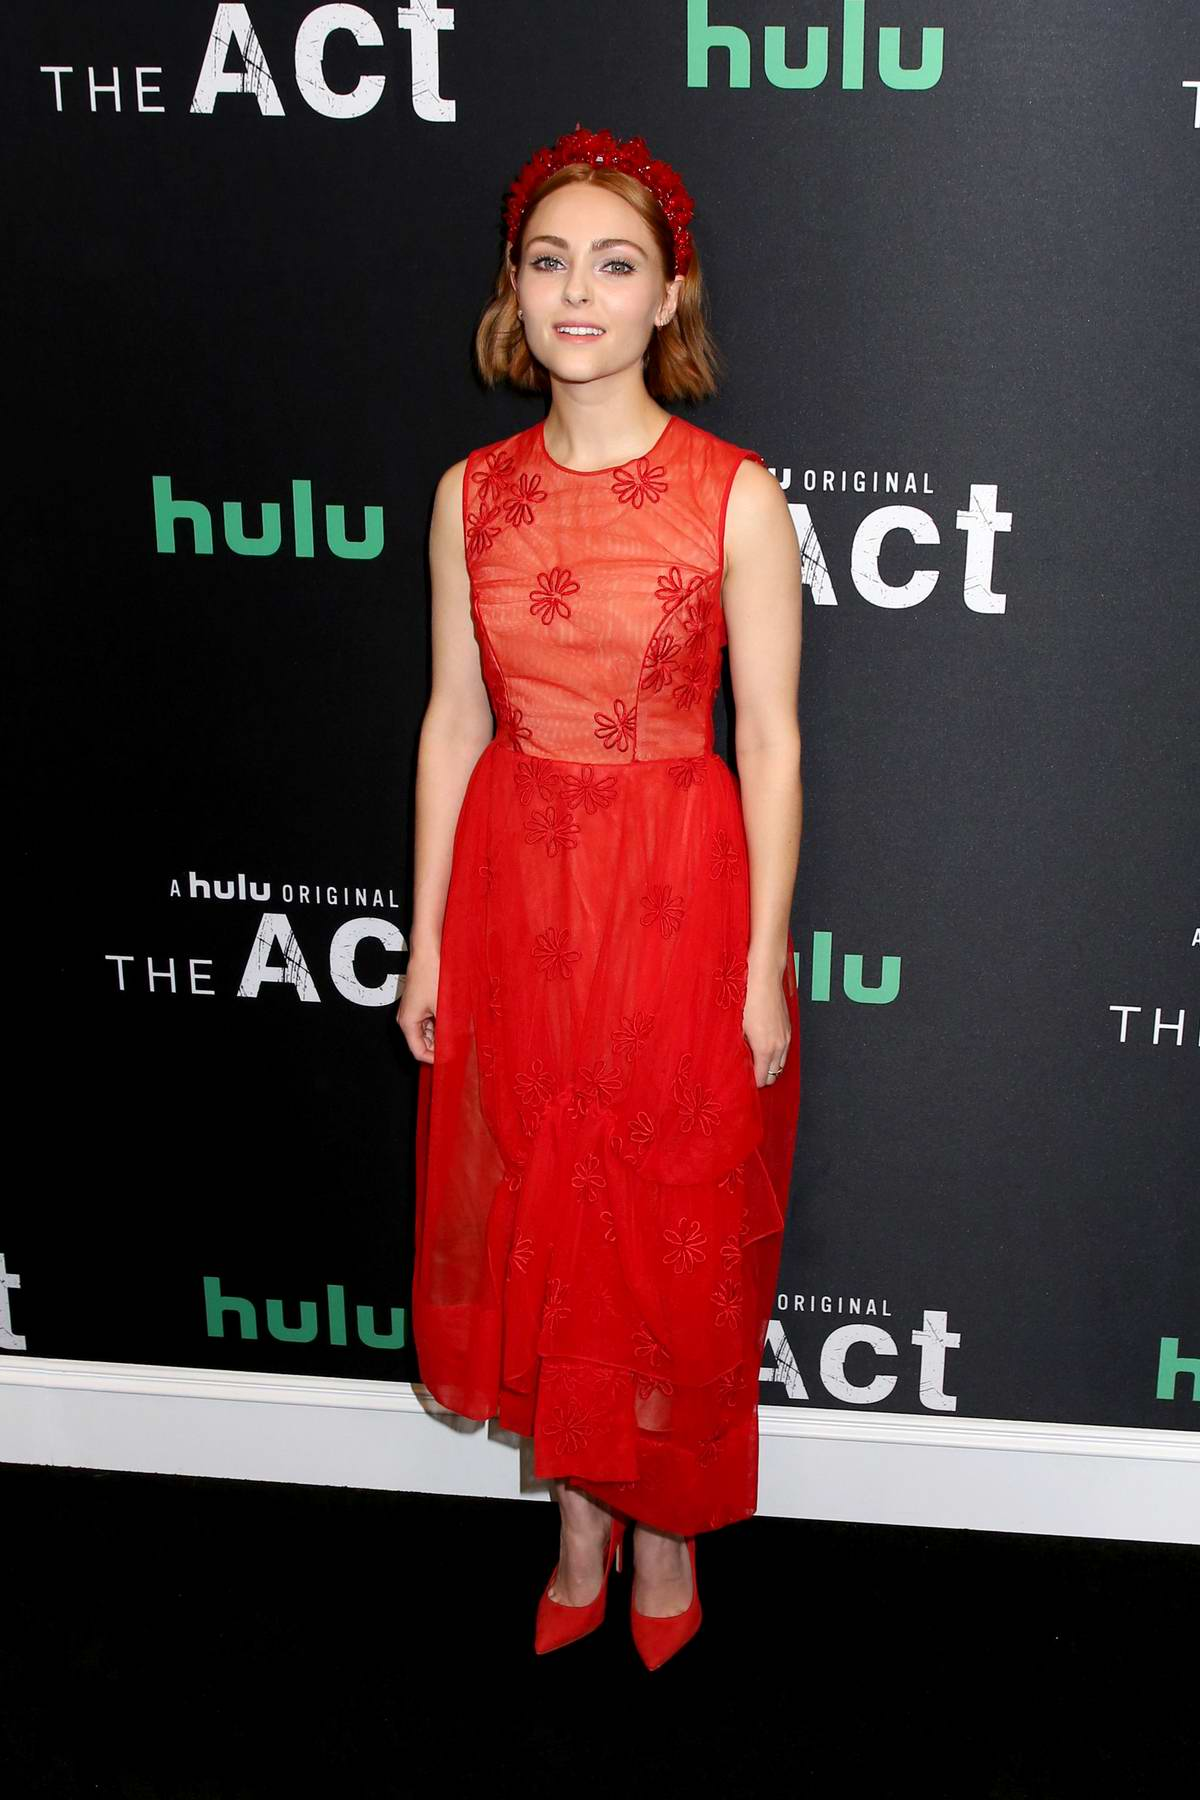 AnnaSophia Robb attends HULU's Season Premiere of 'The Act' in New York City